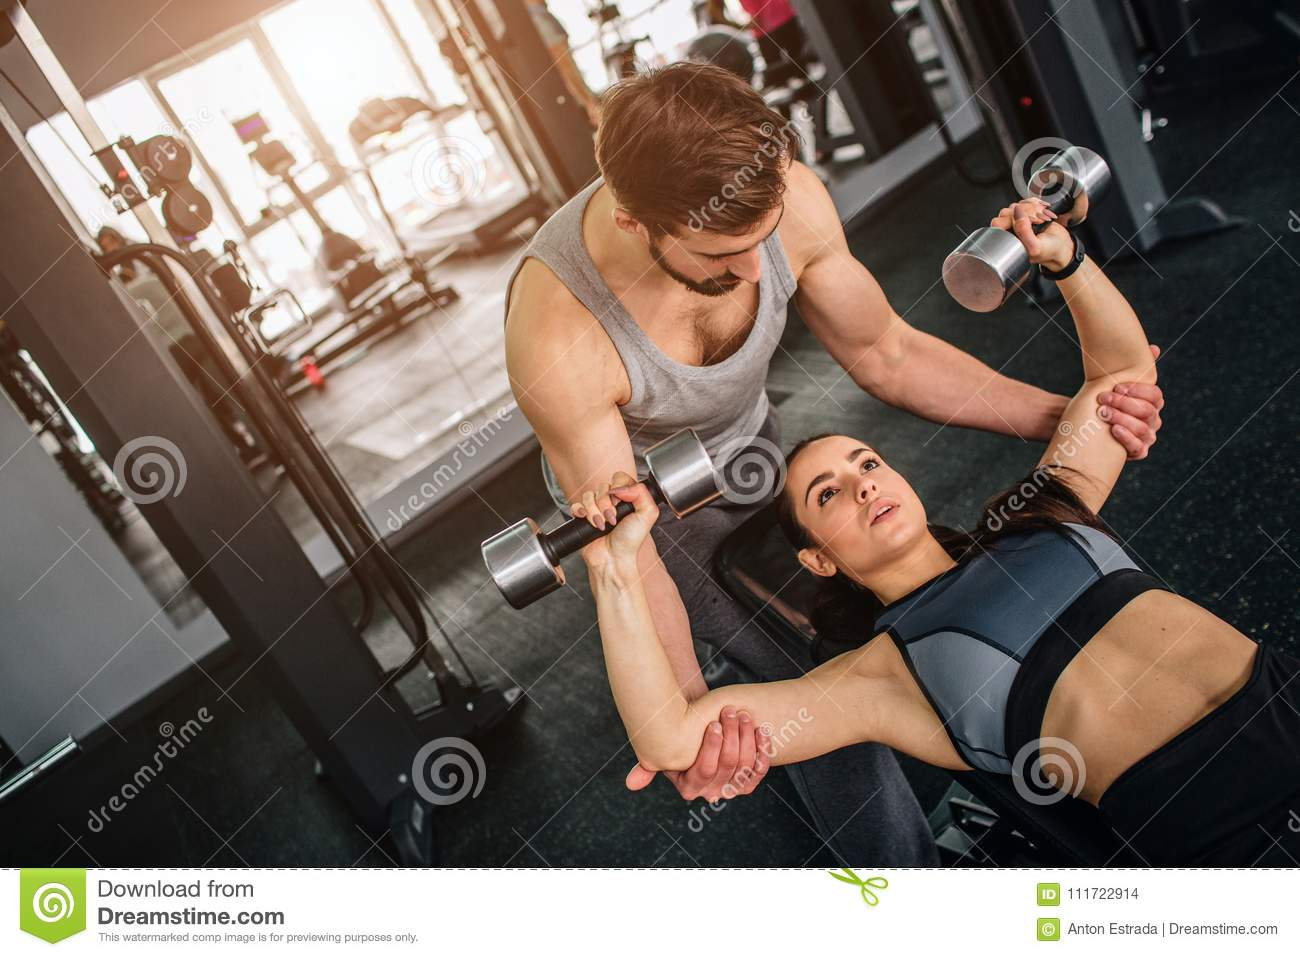 Handsome guy standing near his girlfriend and helping her to do exersices with a dumbbell. He is supporting her to make